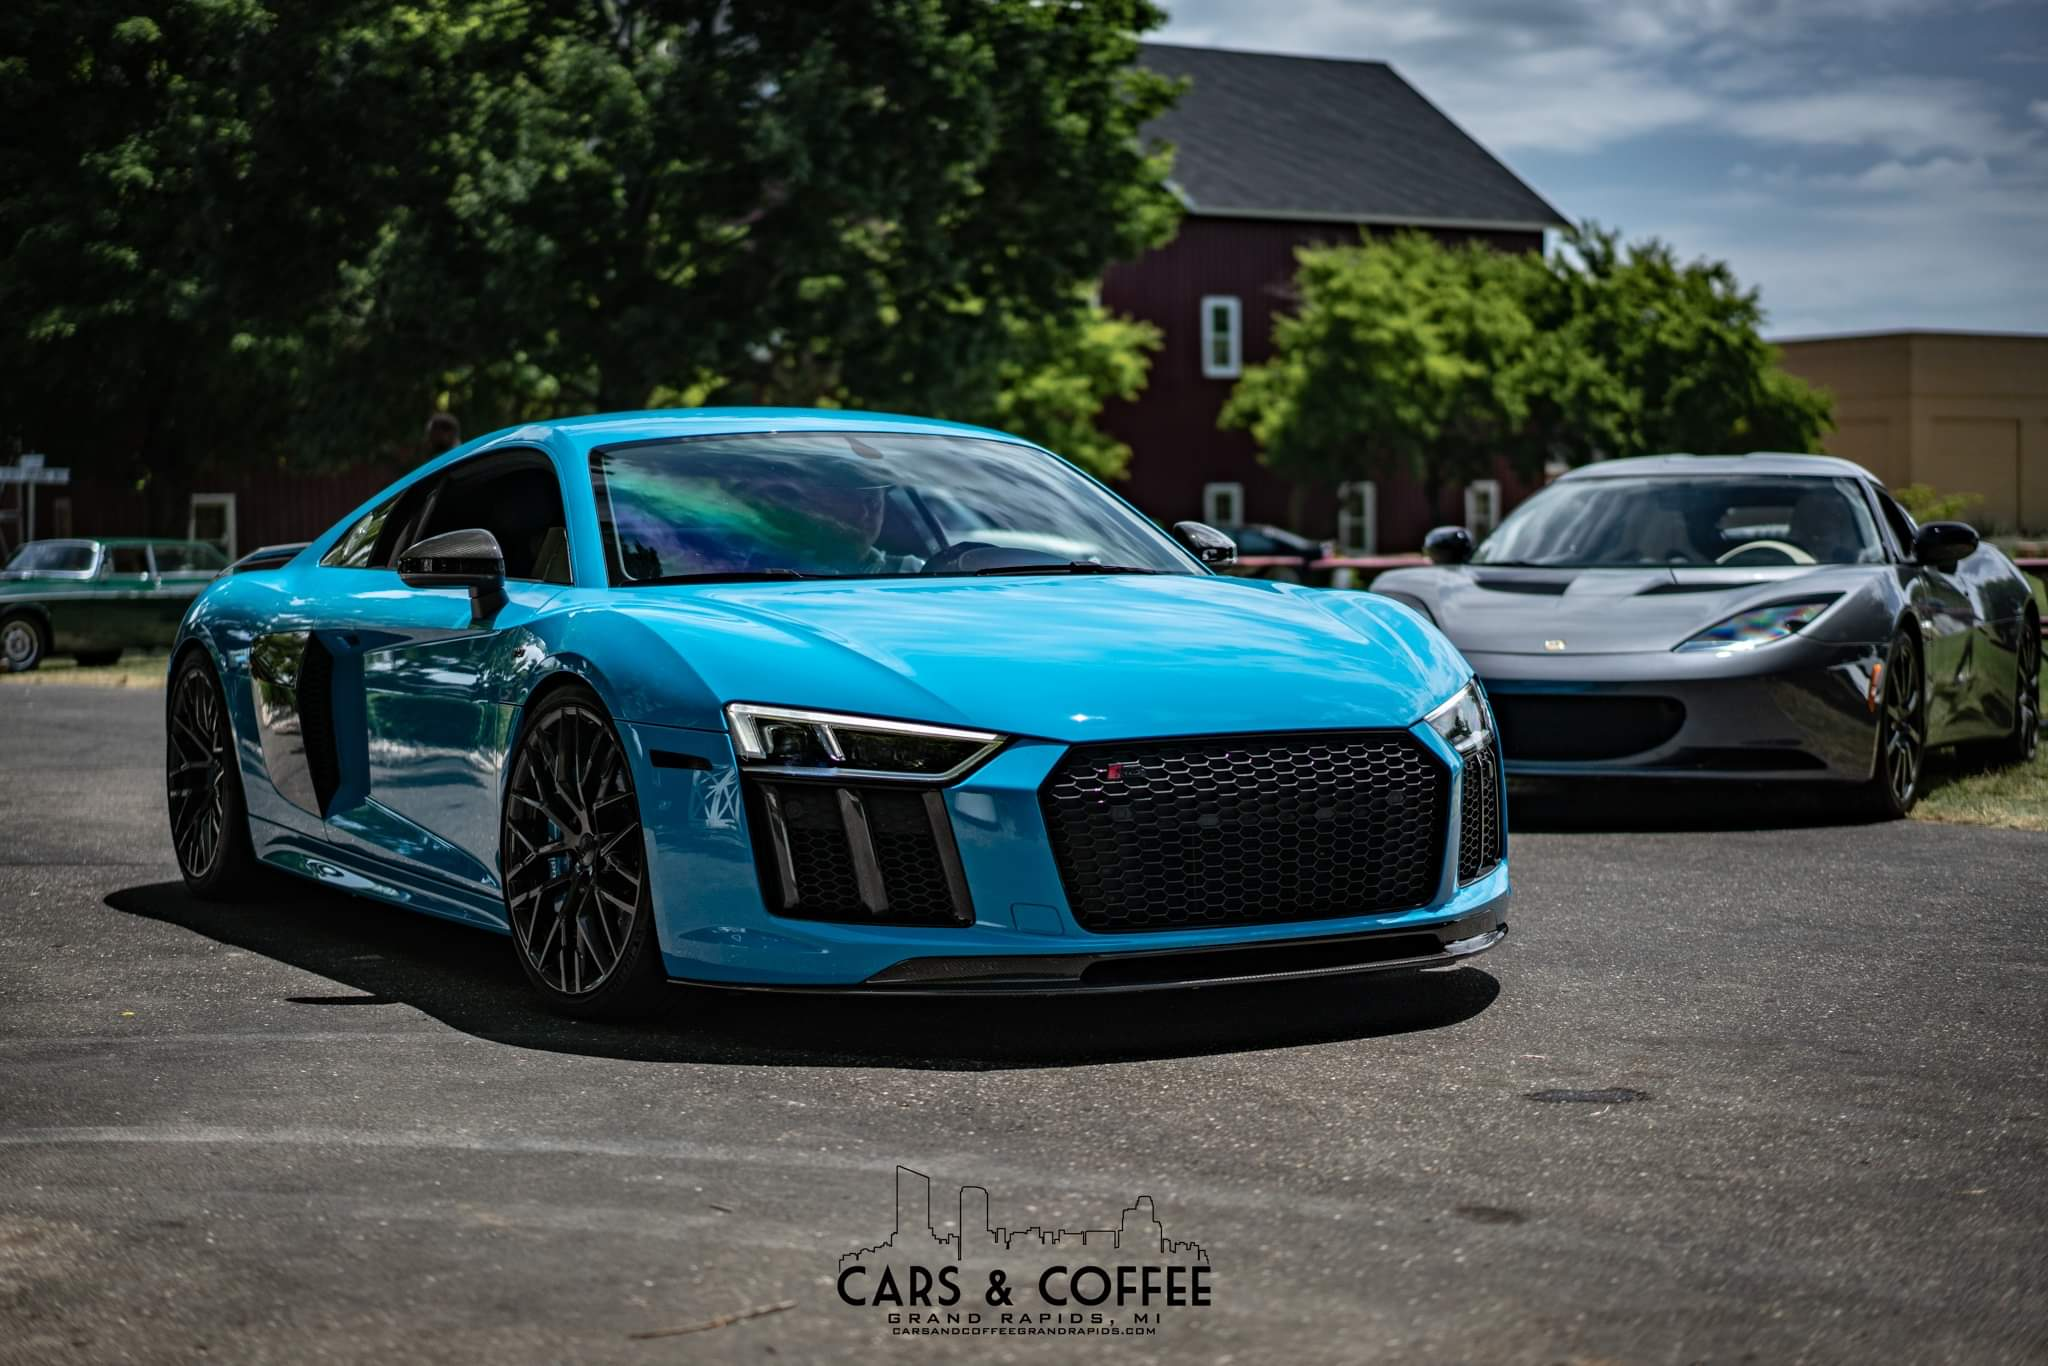 Who has the best looking R8 here?-67497939_2480097515370251_3603597021564370944_o_1565025911105.jpg